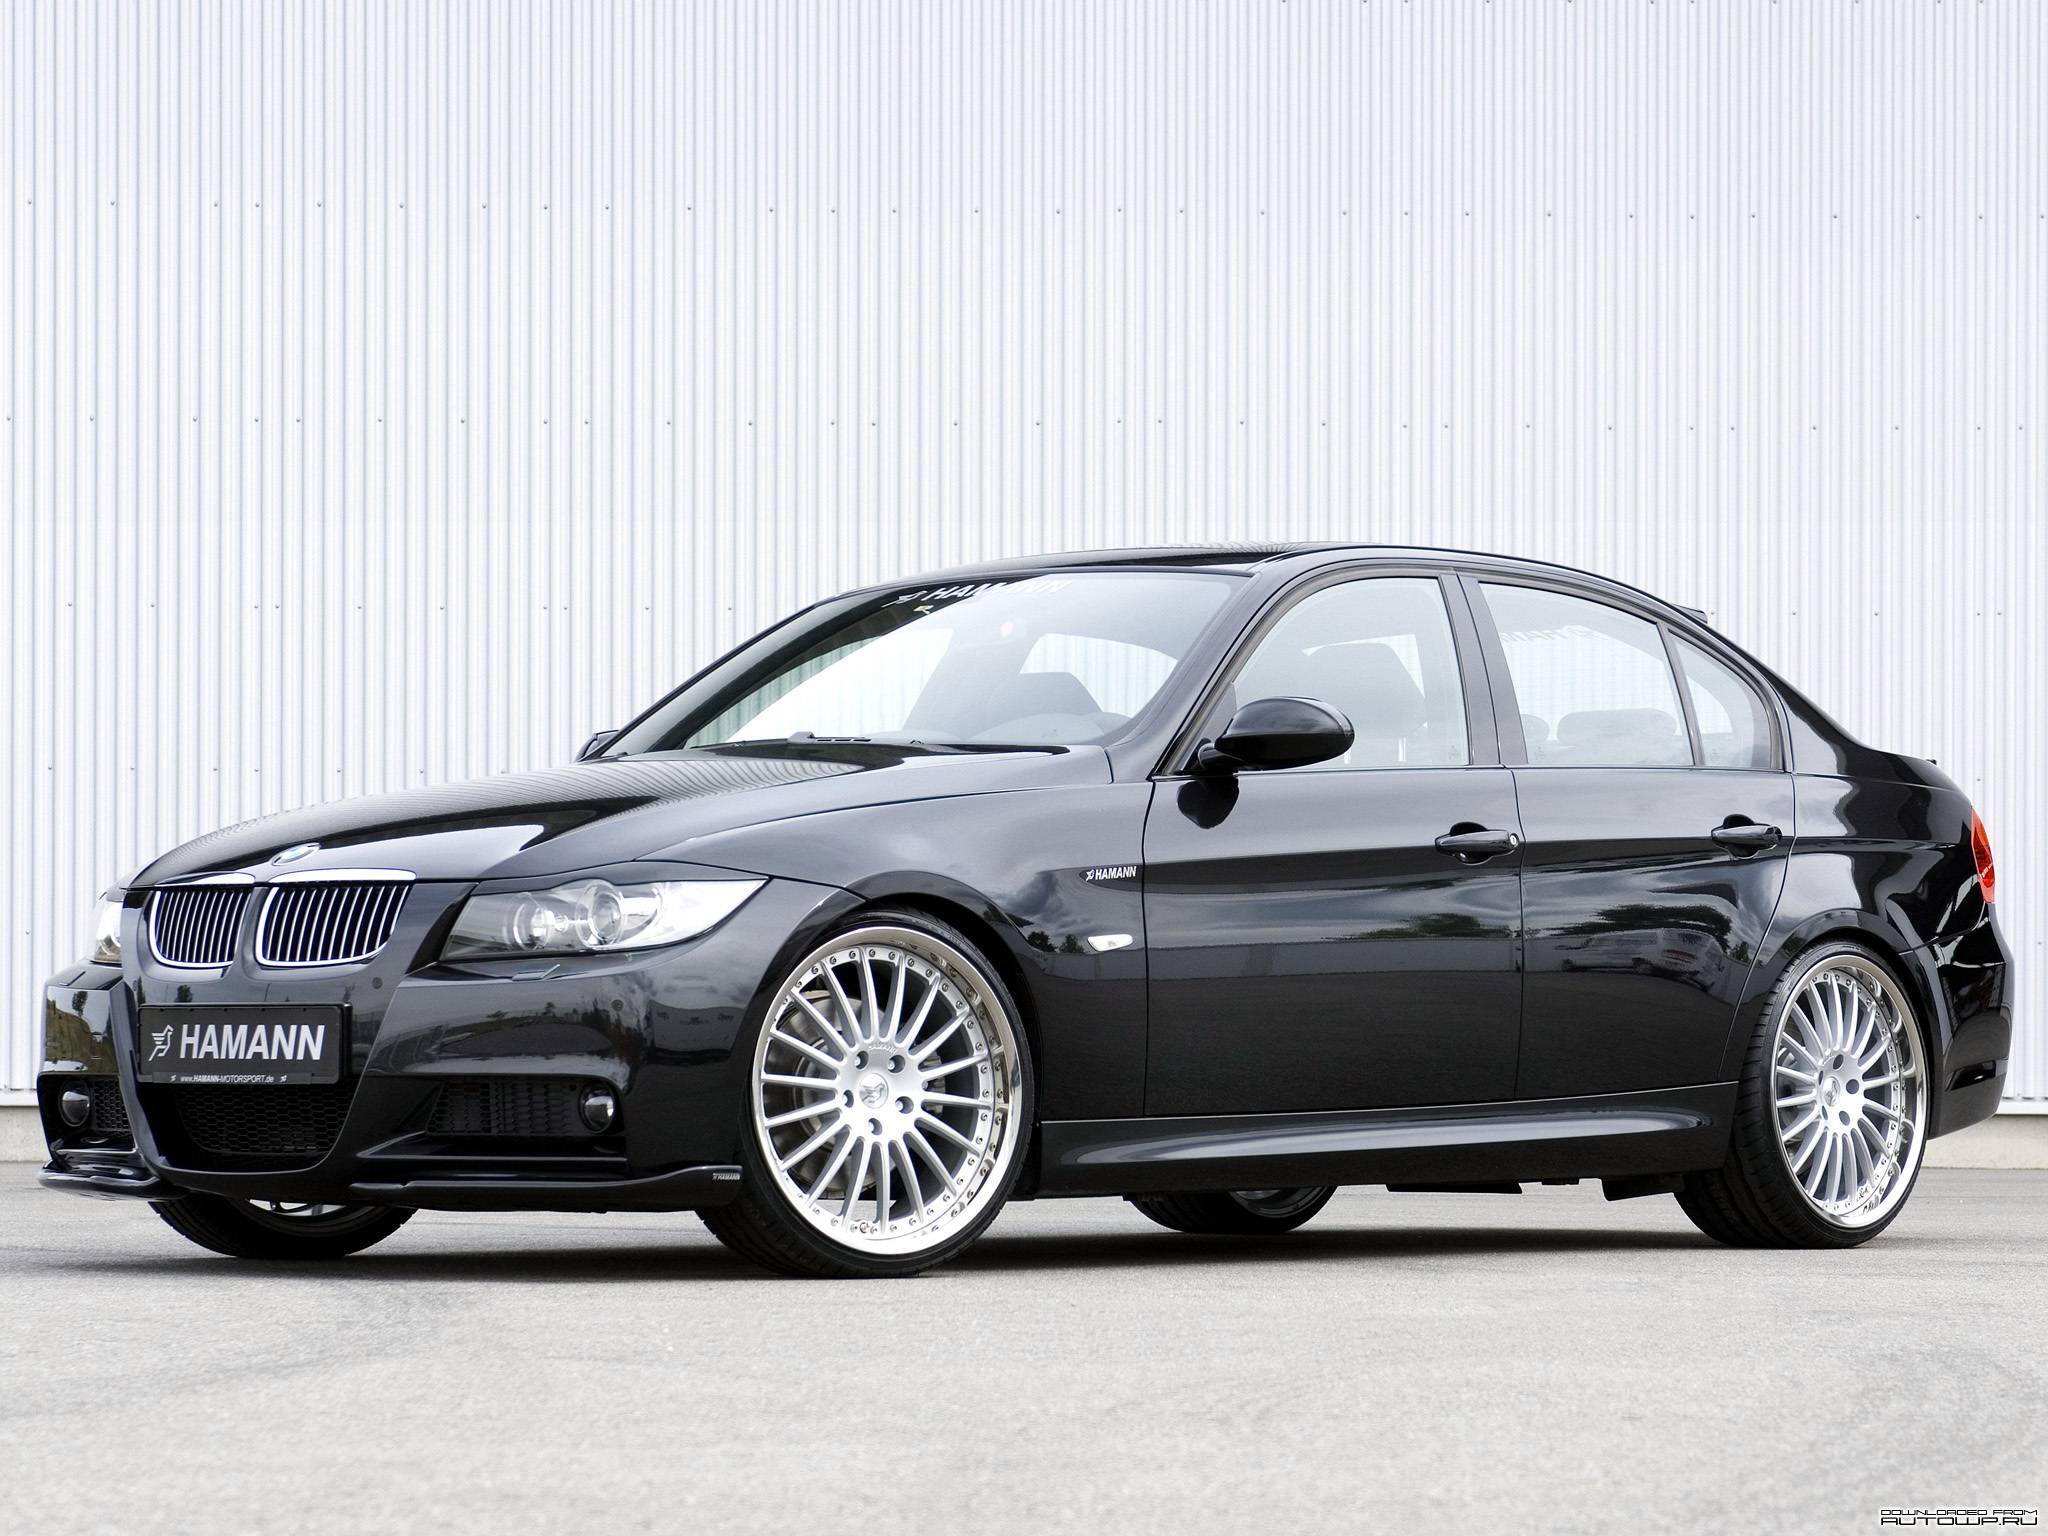 hamann bmw 3 series e90 picture 59505 hamann photo gallery. Black Bedroom Furniture Sets. Home Design Ideas